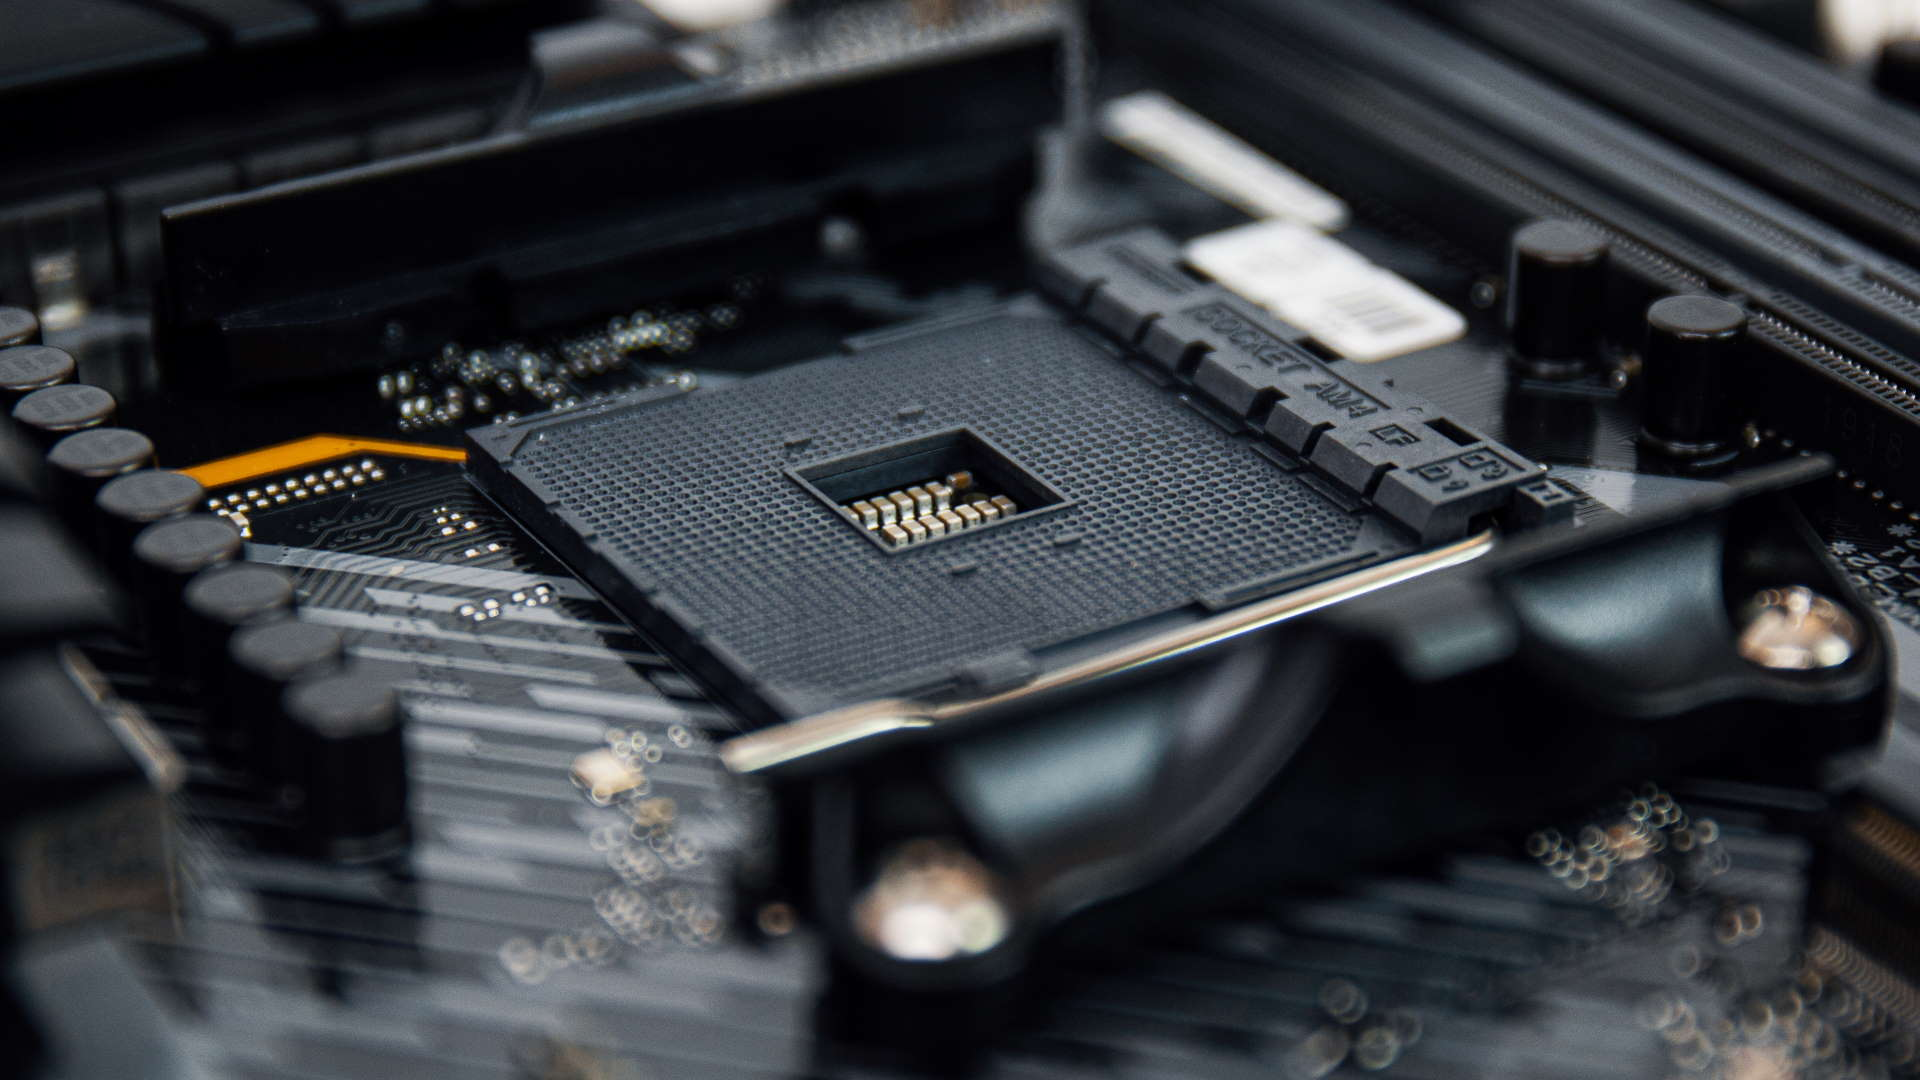 Cheap motherboards for AMD Ryzen with PCIe 4.0 coming in Q1